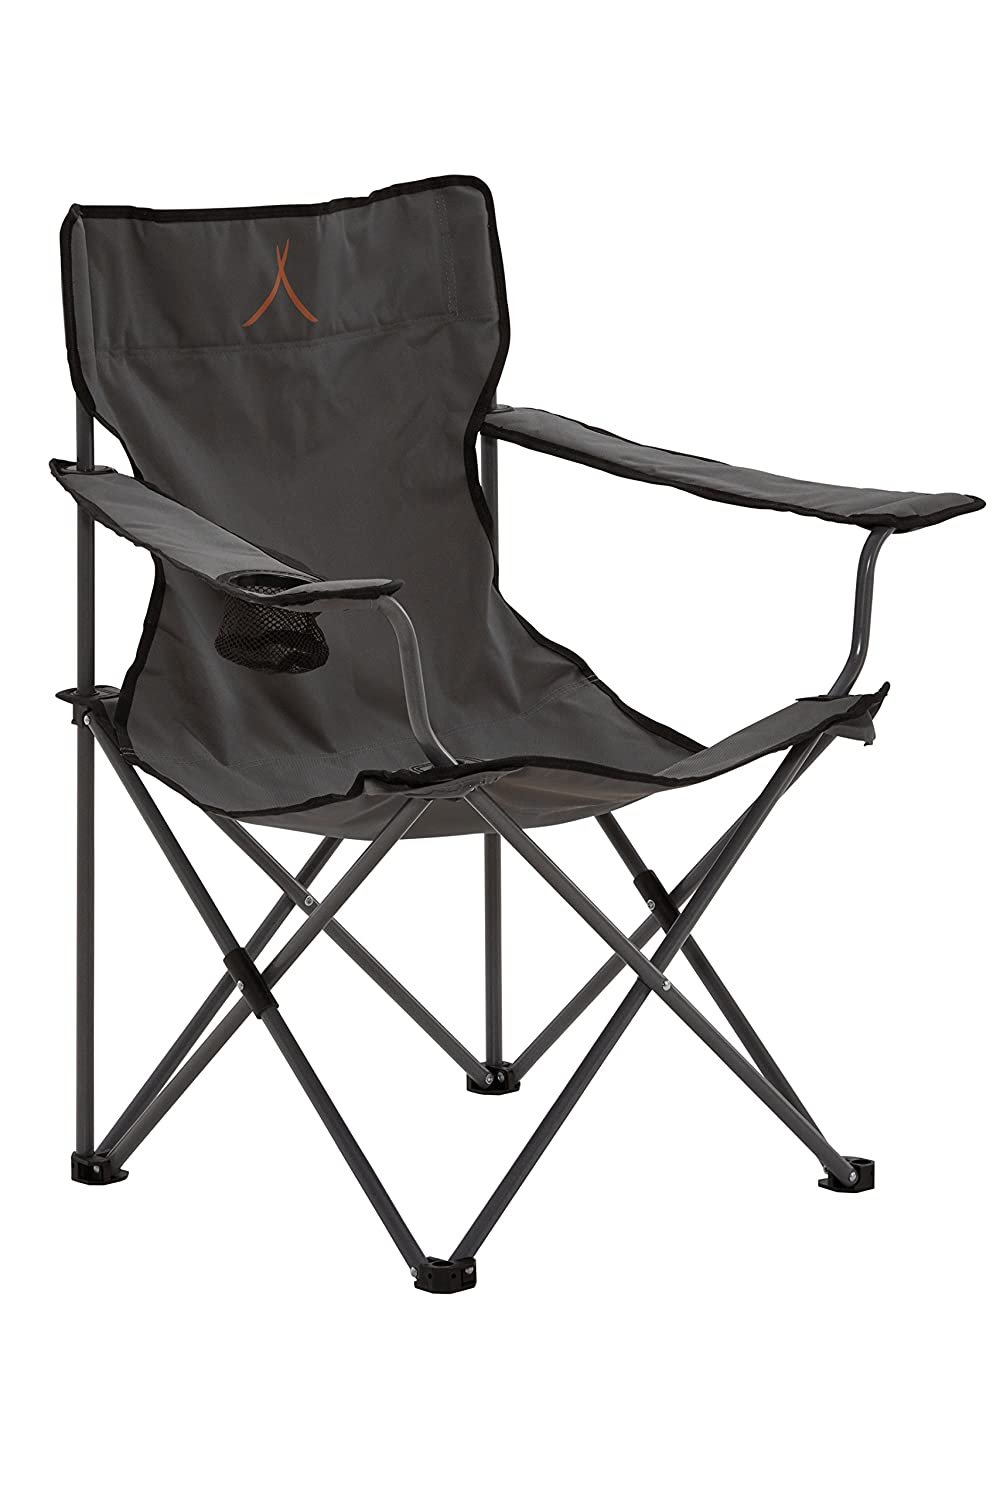 Grand Canyon Director- silla de camping plegable, acero, gris/negra, 308011